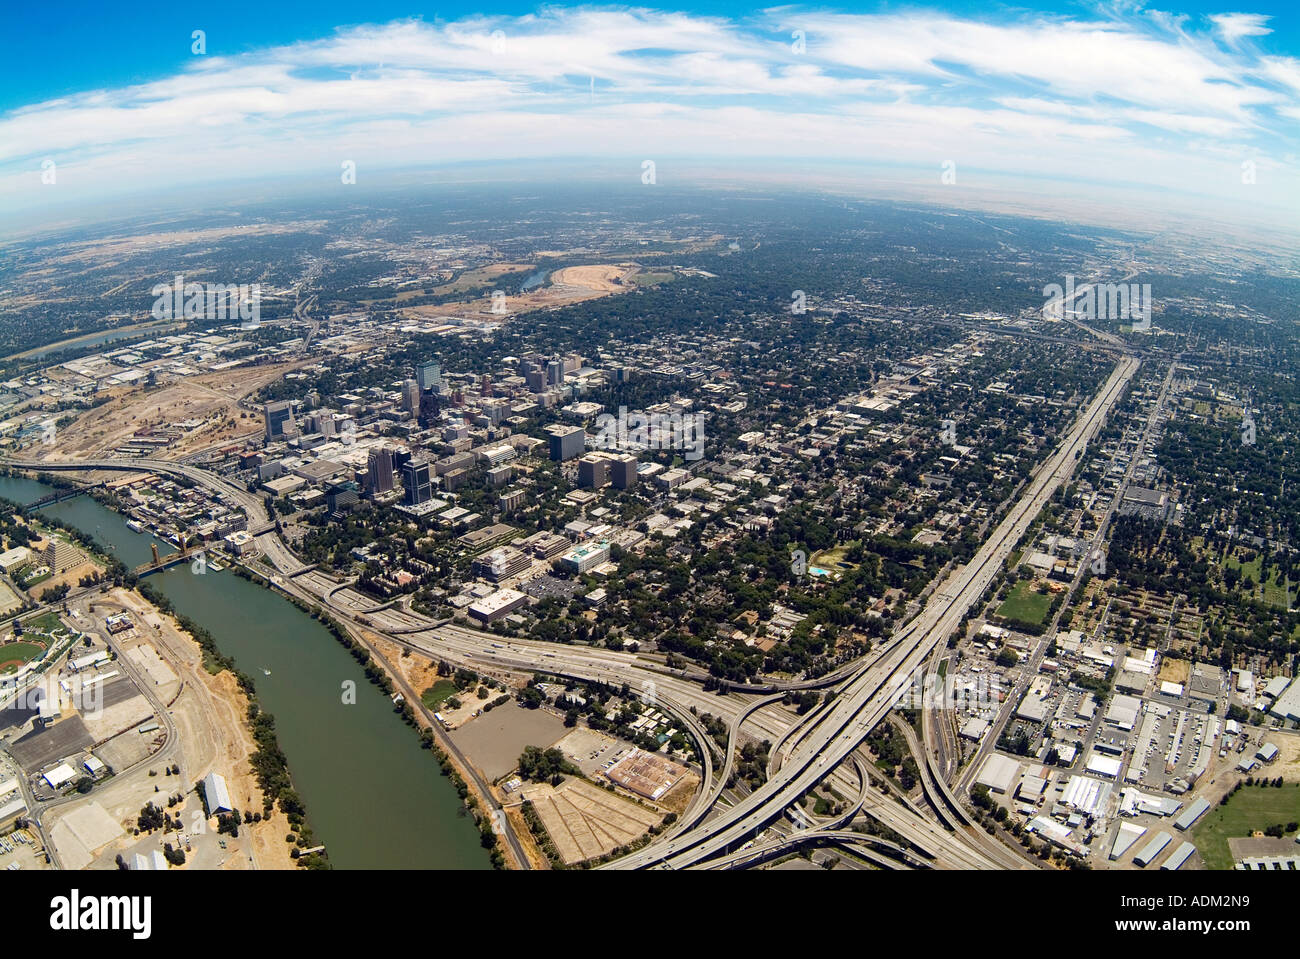 aerial view above Sacramento river and city of Sacramento, CA - Stock Image